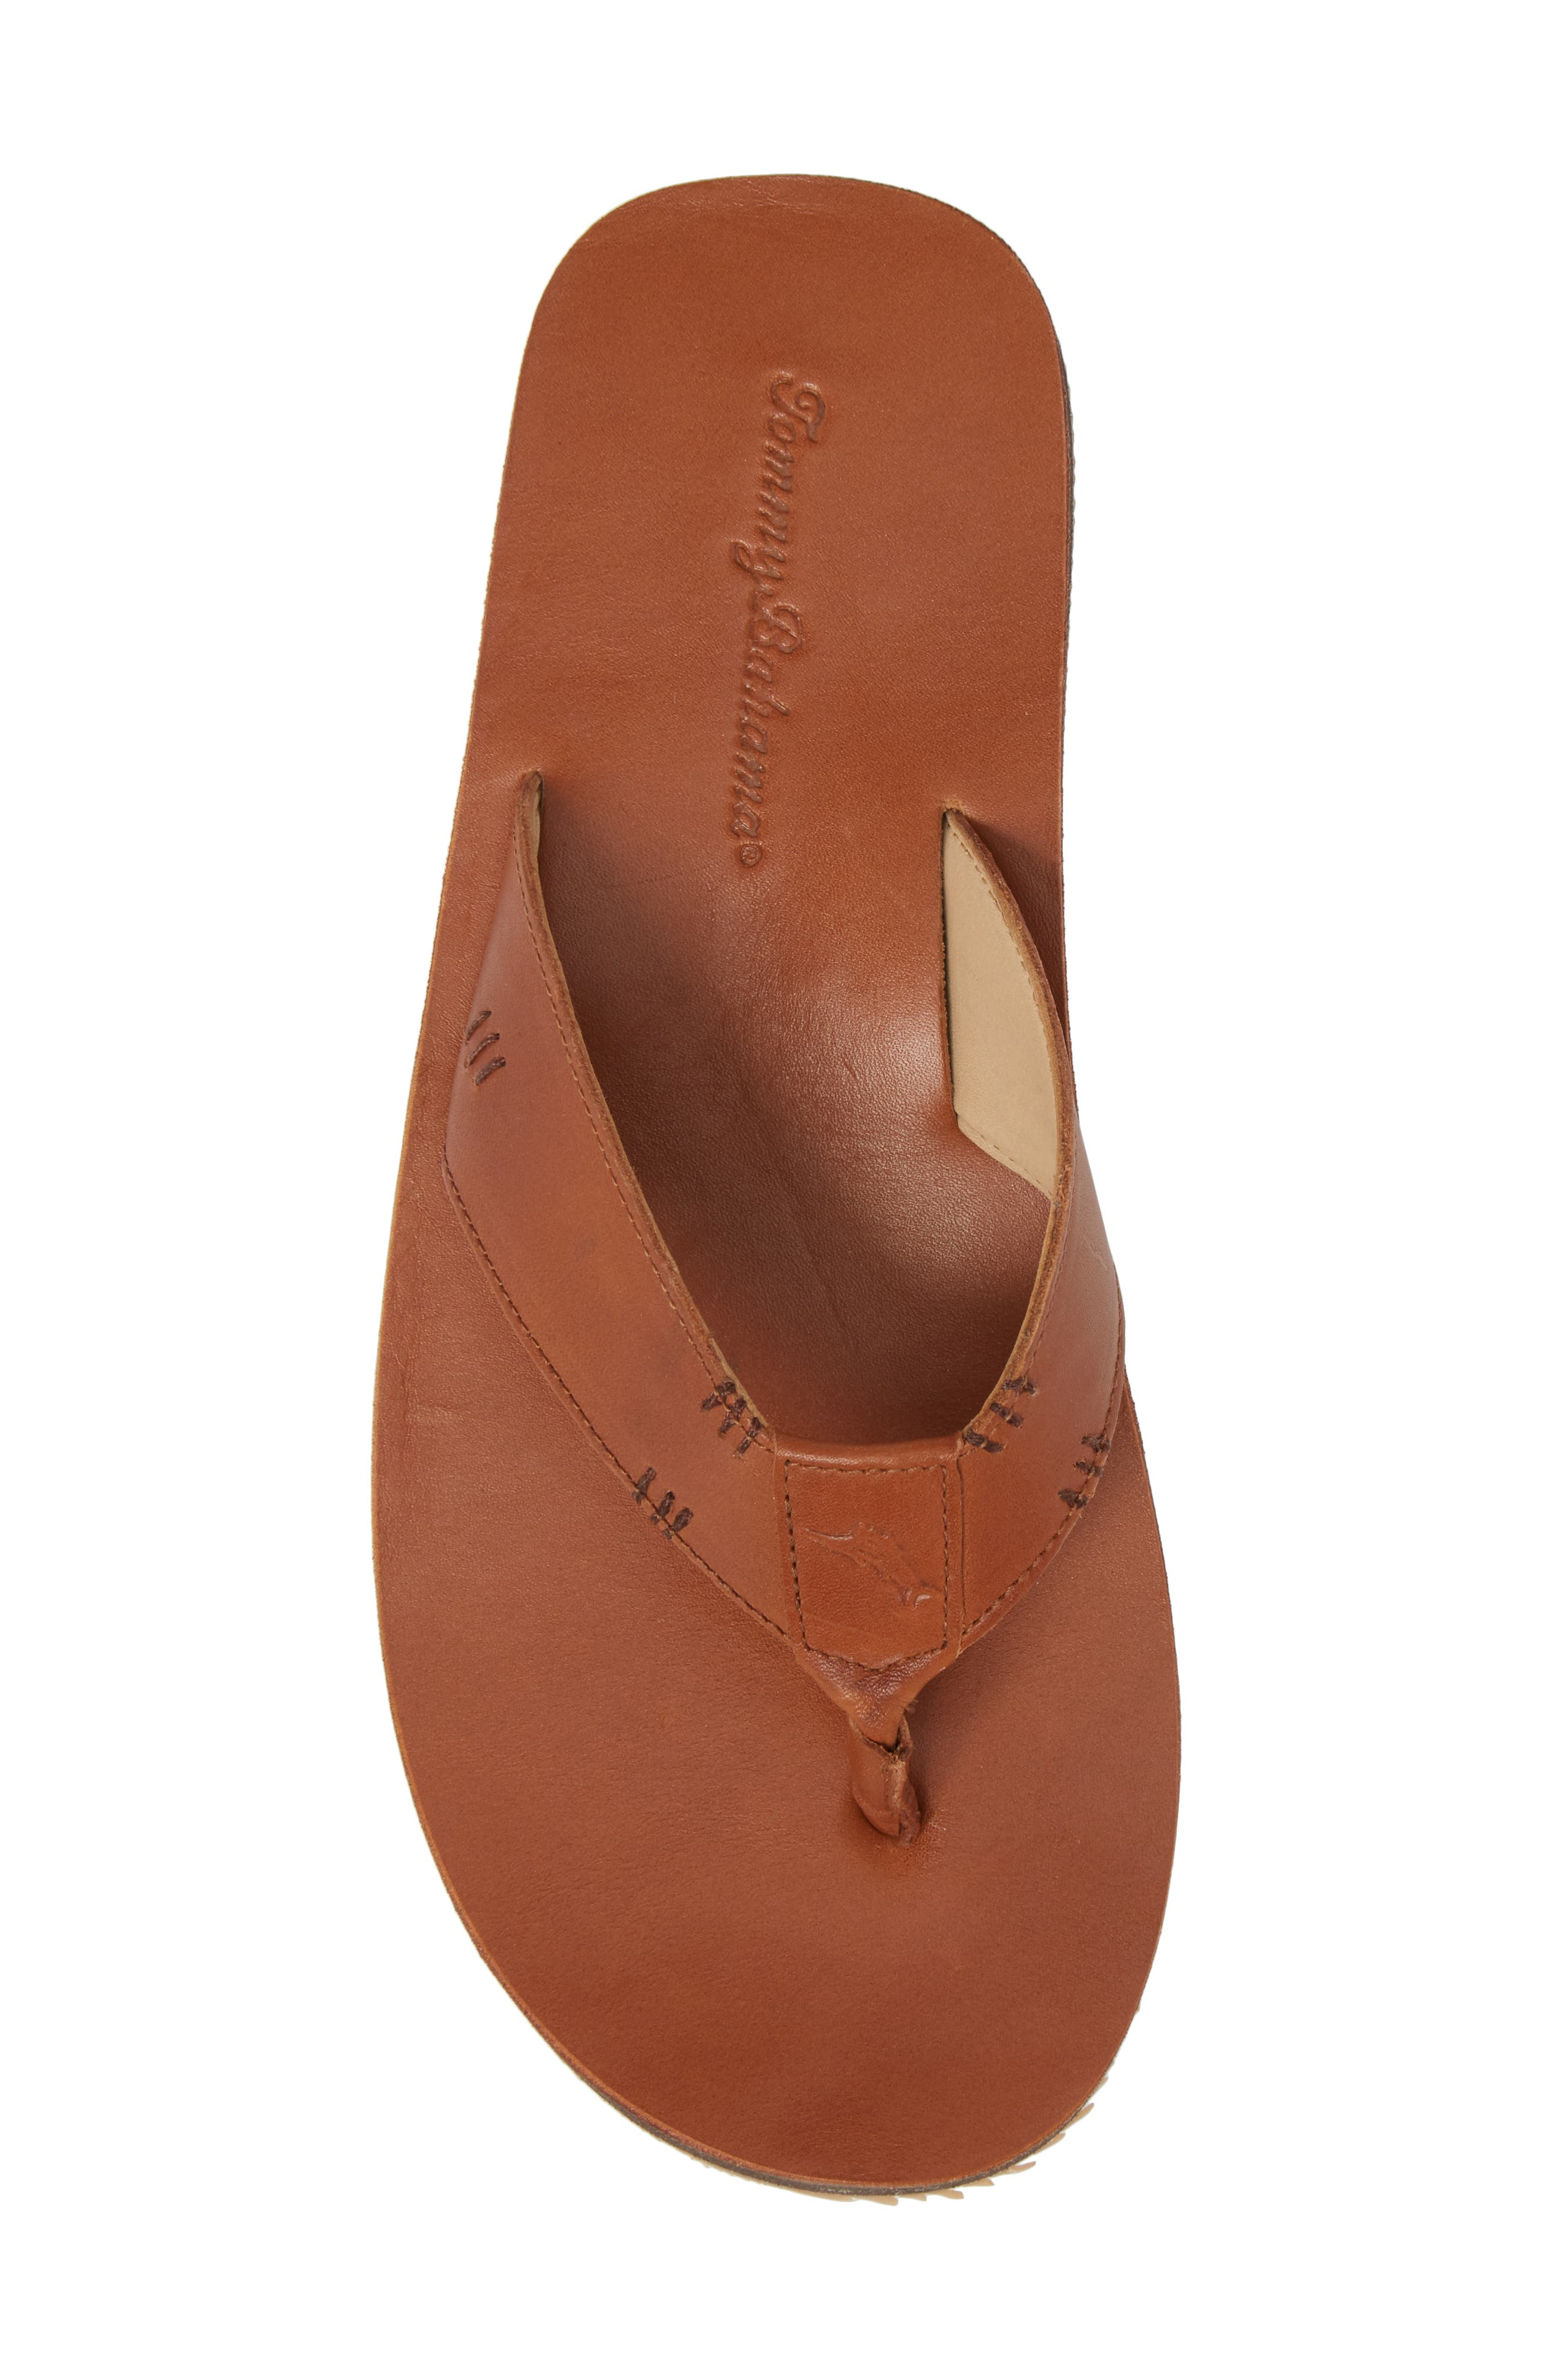 TOMMY BAHAMA, Adderly Flip Flop, Alternate thumbnail 5, color, TAN LEATHER